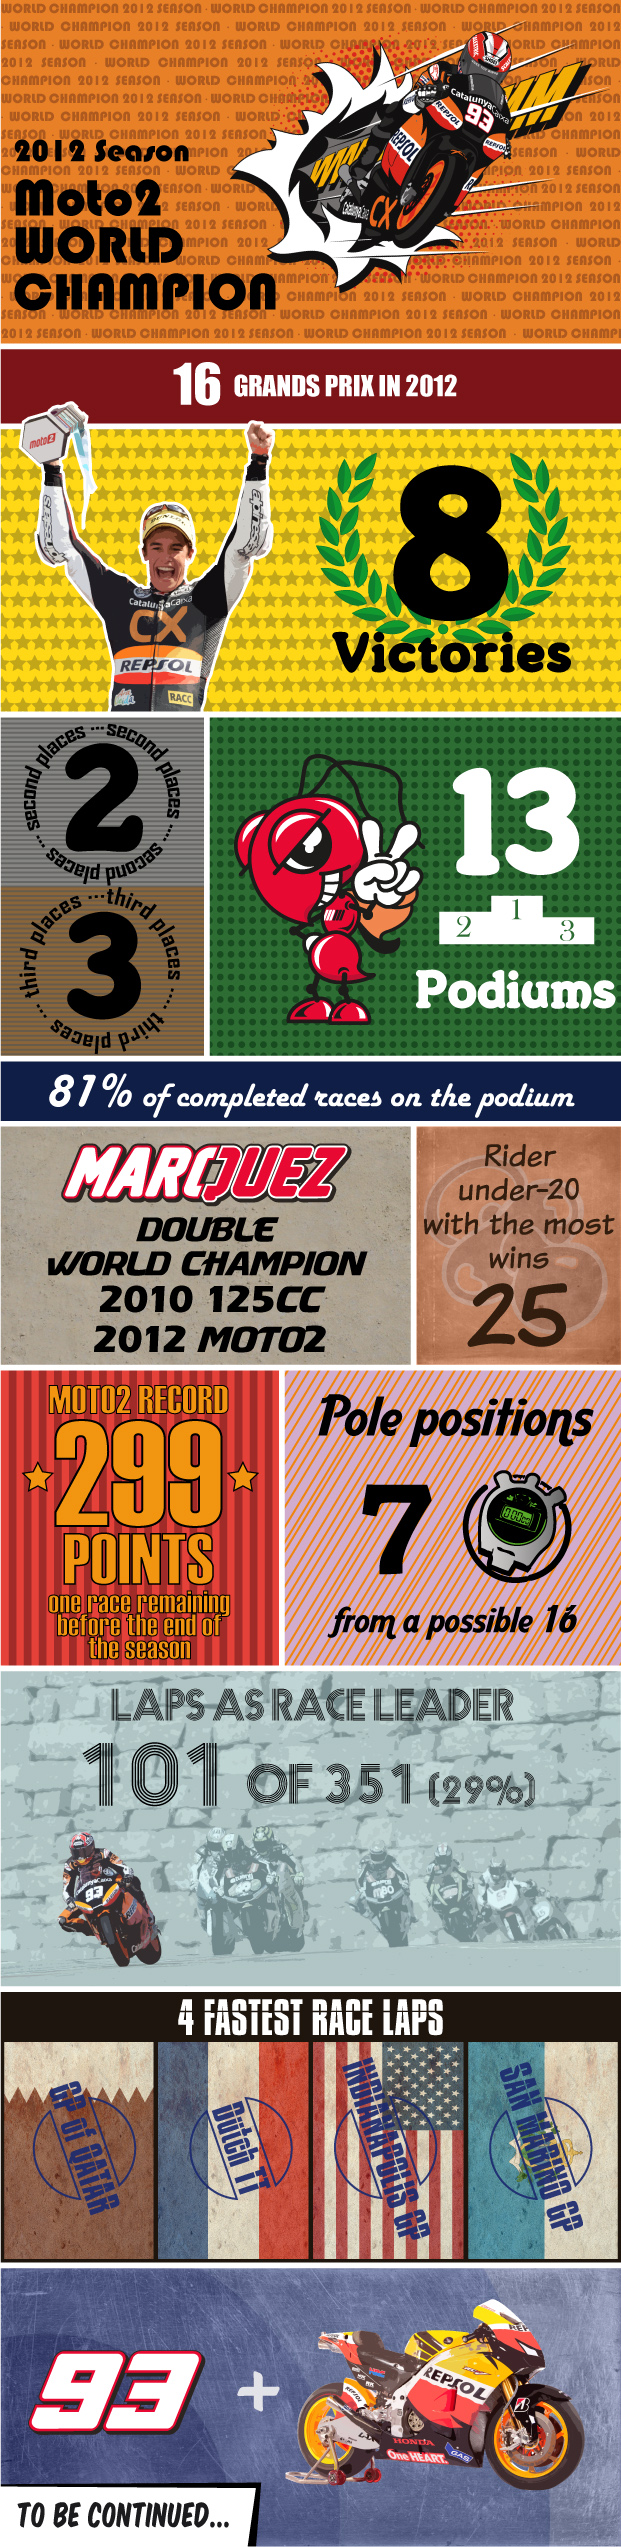 Infographic on Marc Marquez winning the 2012 Moto2 Championship